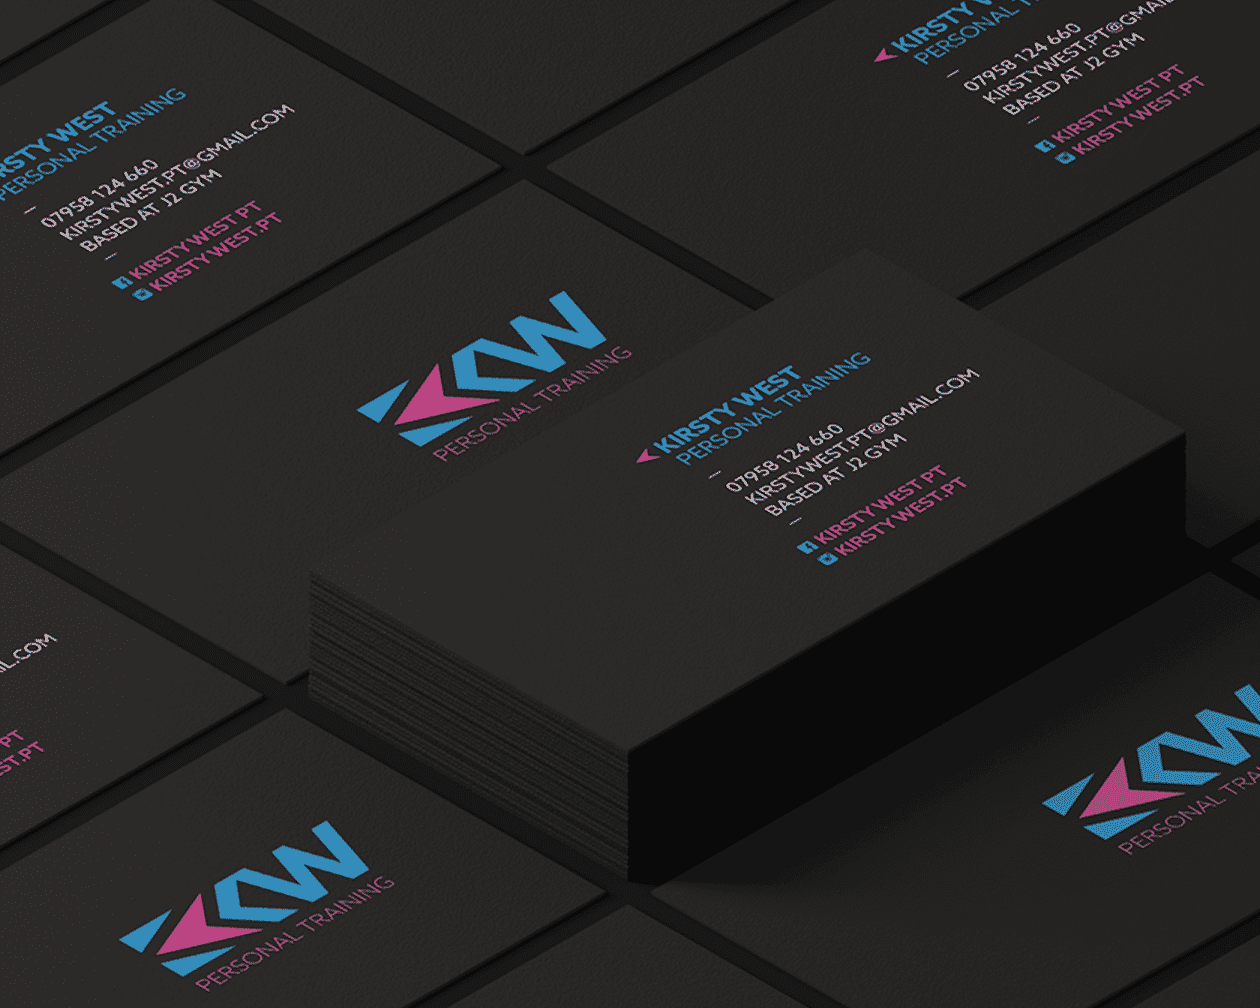 Kirsty West Business Cards